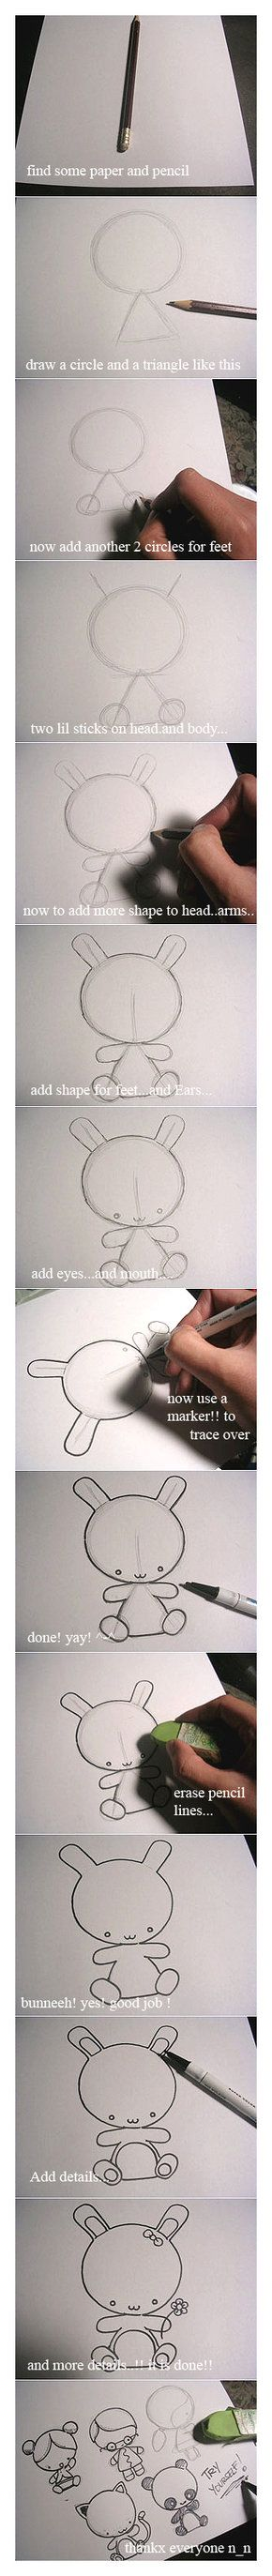 Draw a chibi bunny tutoriaL by ~Blackmago on deviantART